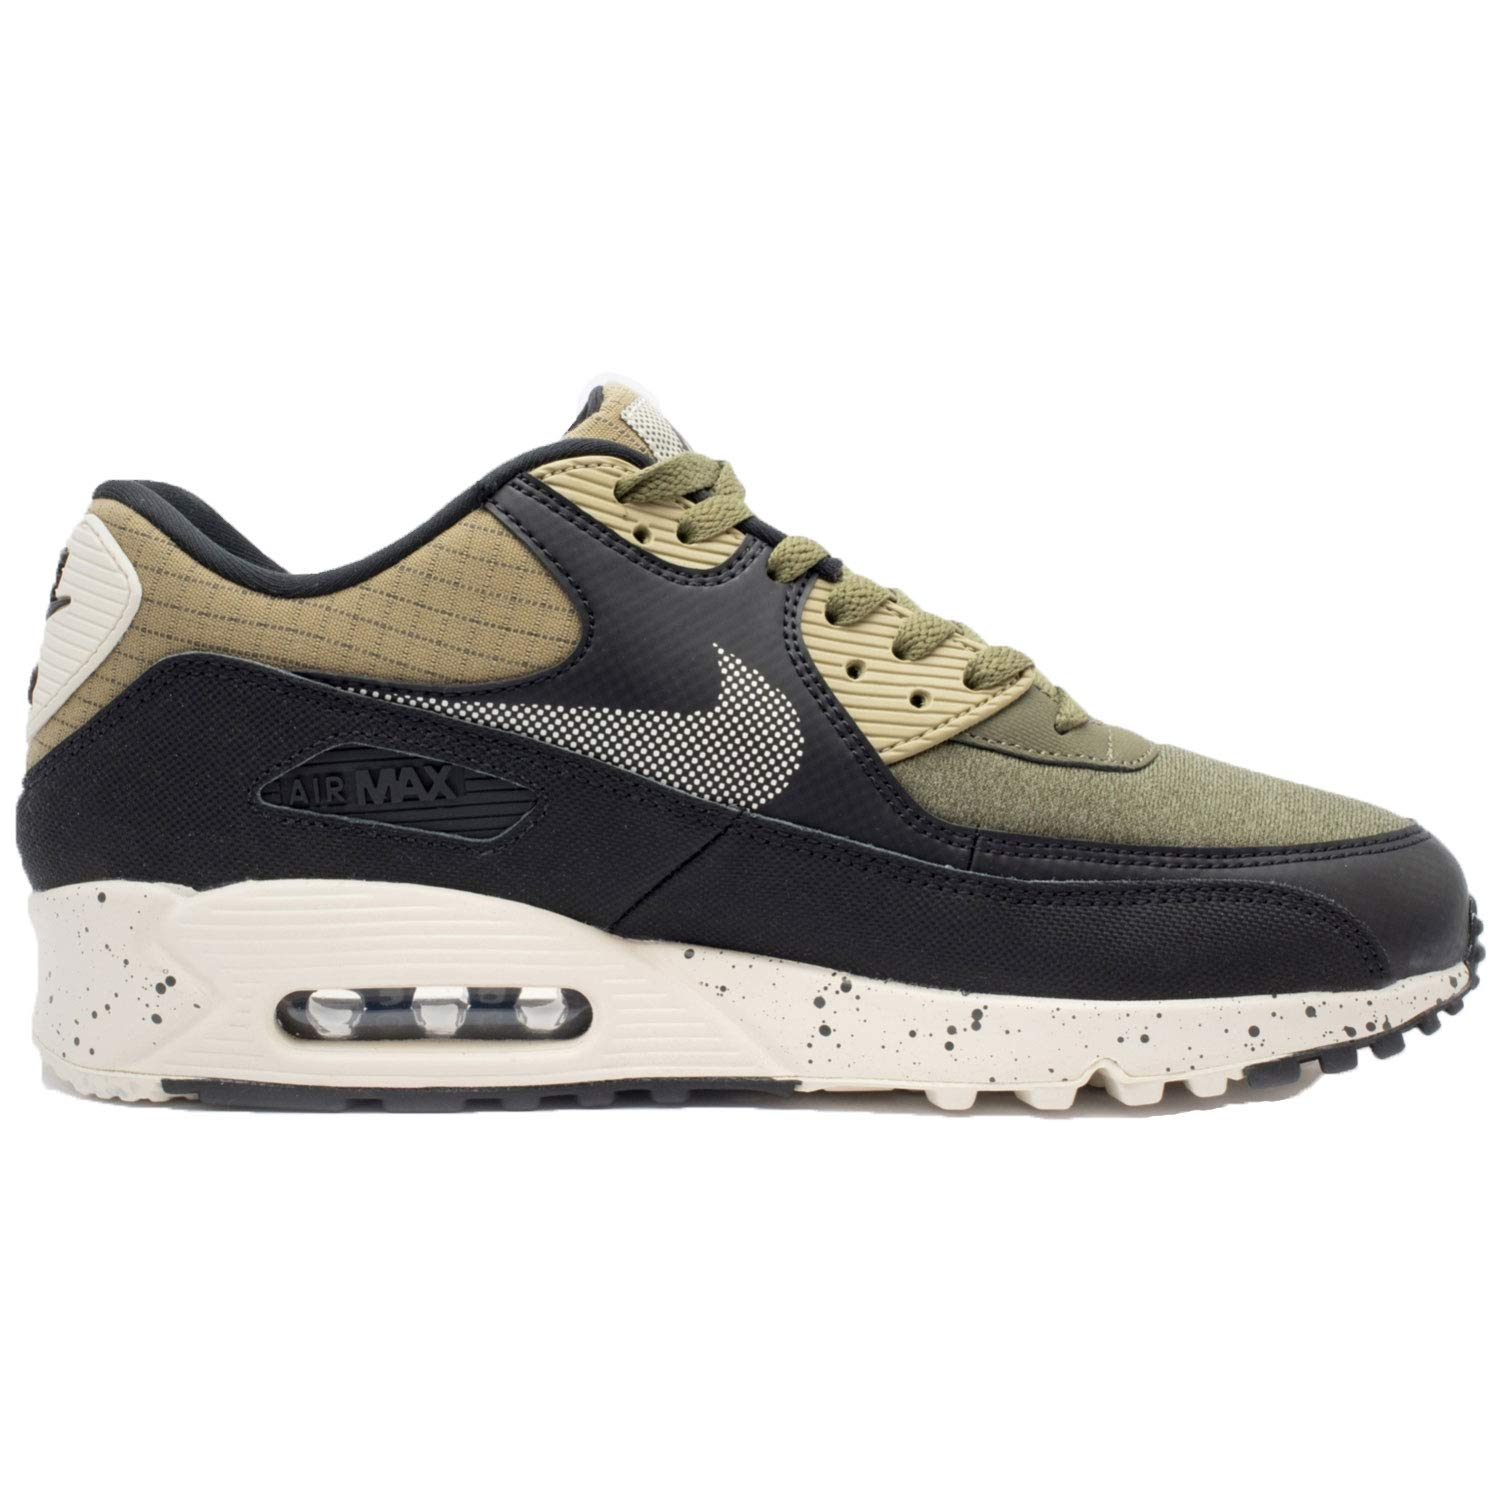 Galleon - NIKE Men s Air Max 90 Premium Neutral Olive 700155-203 ... 04a8e1164